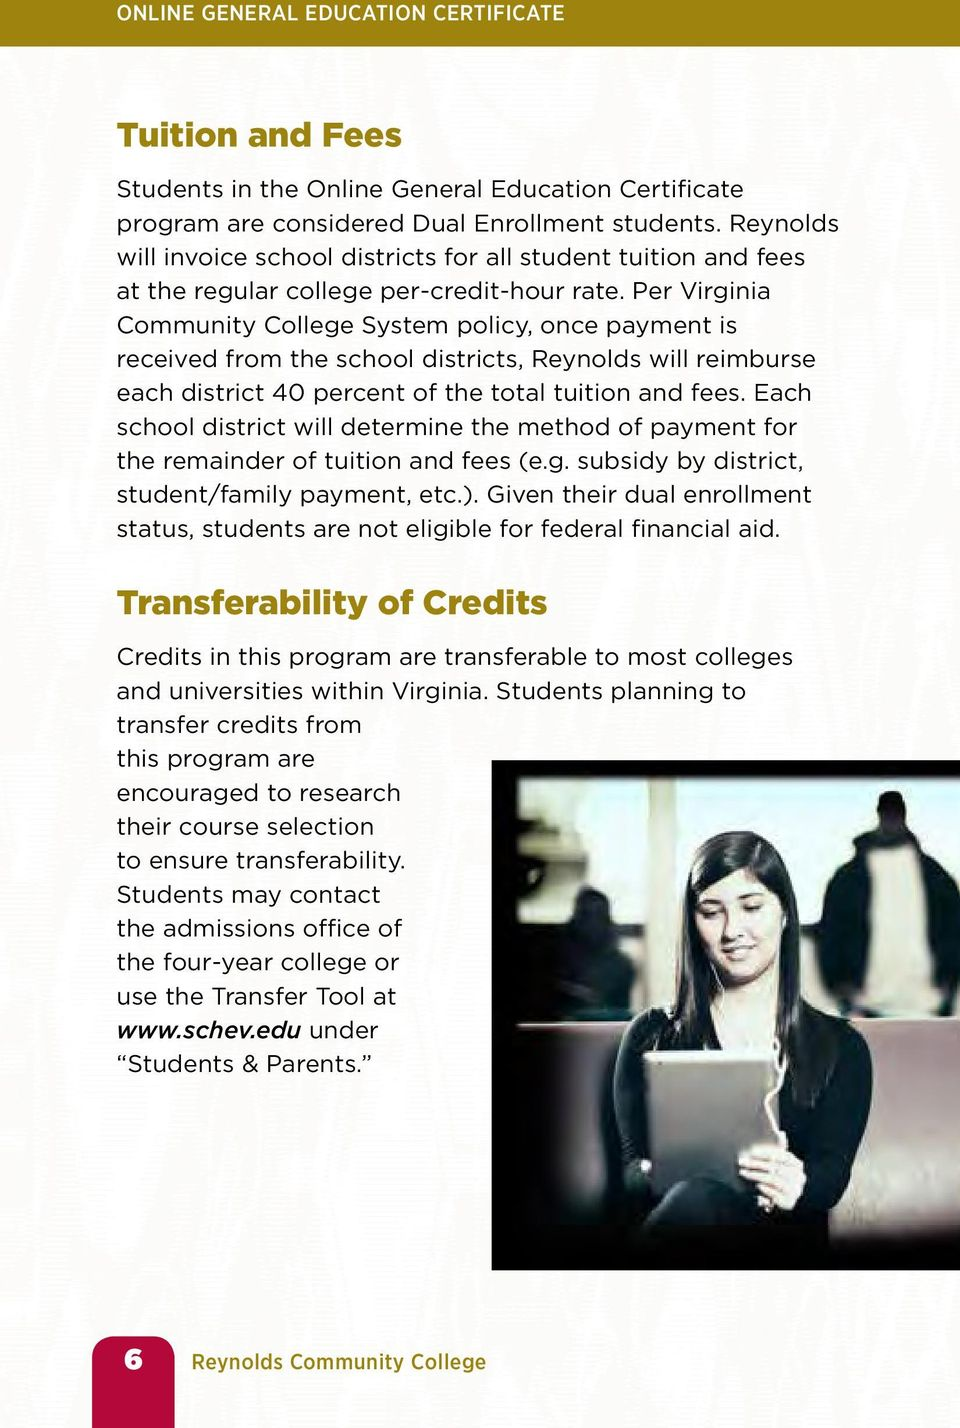 Per Virginia Community College System policy, once payment is received from the school districts, Reynolds will reimburse each district 40 percent of the total tuition and fees.